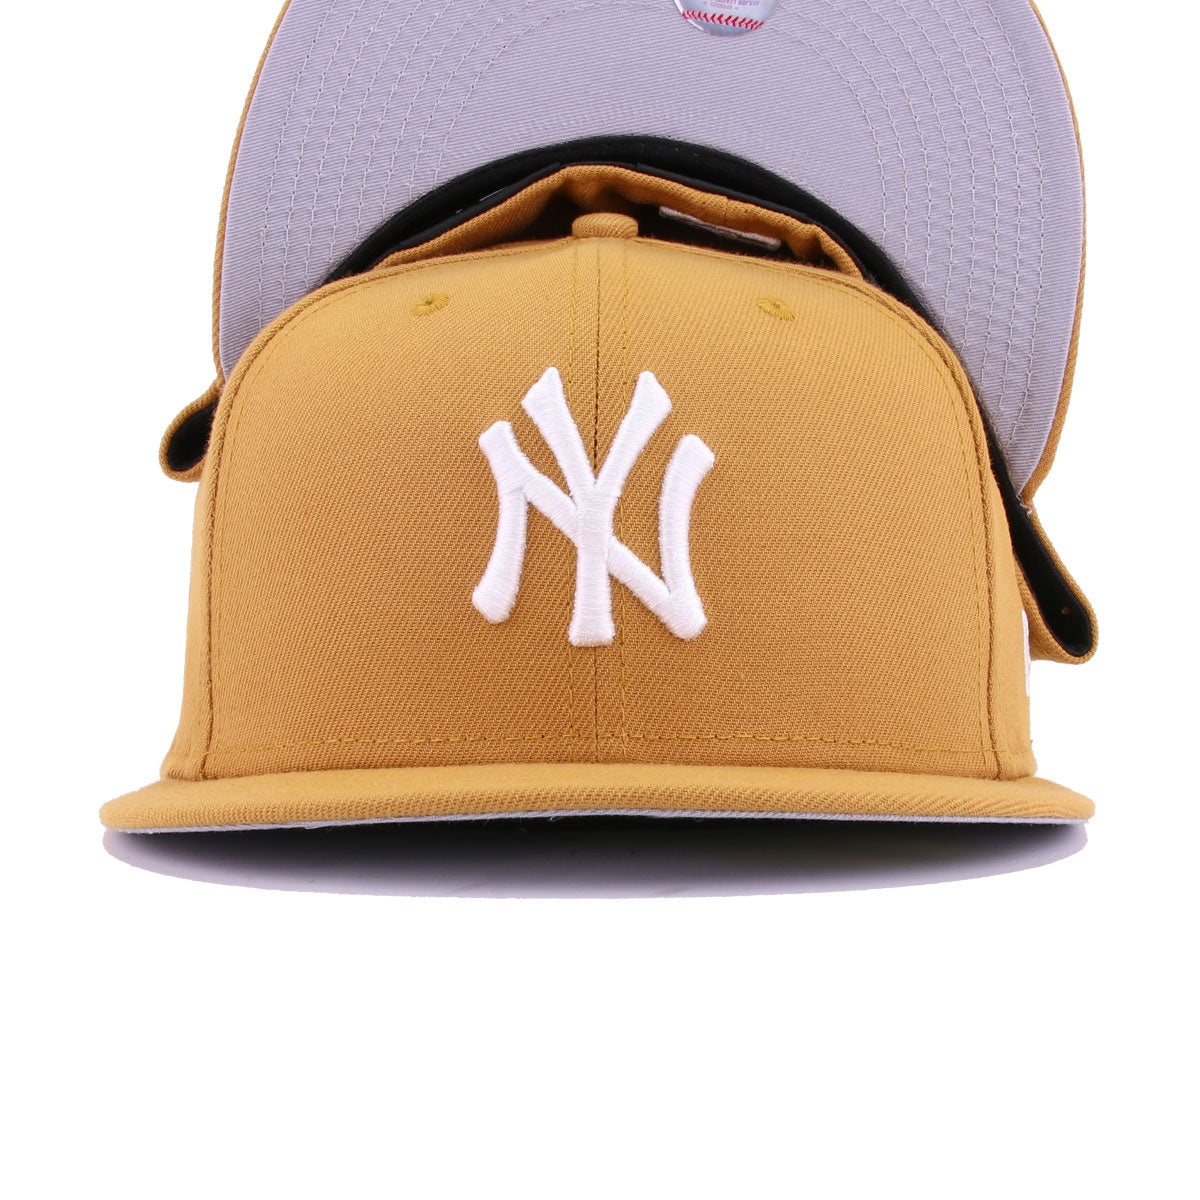 New York Yankees Panama Tan New Era 59Fifty Fitted